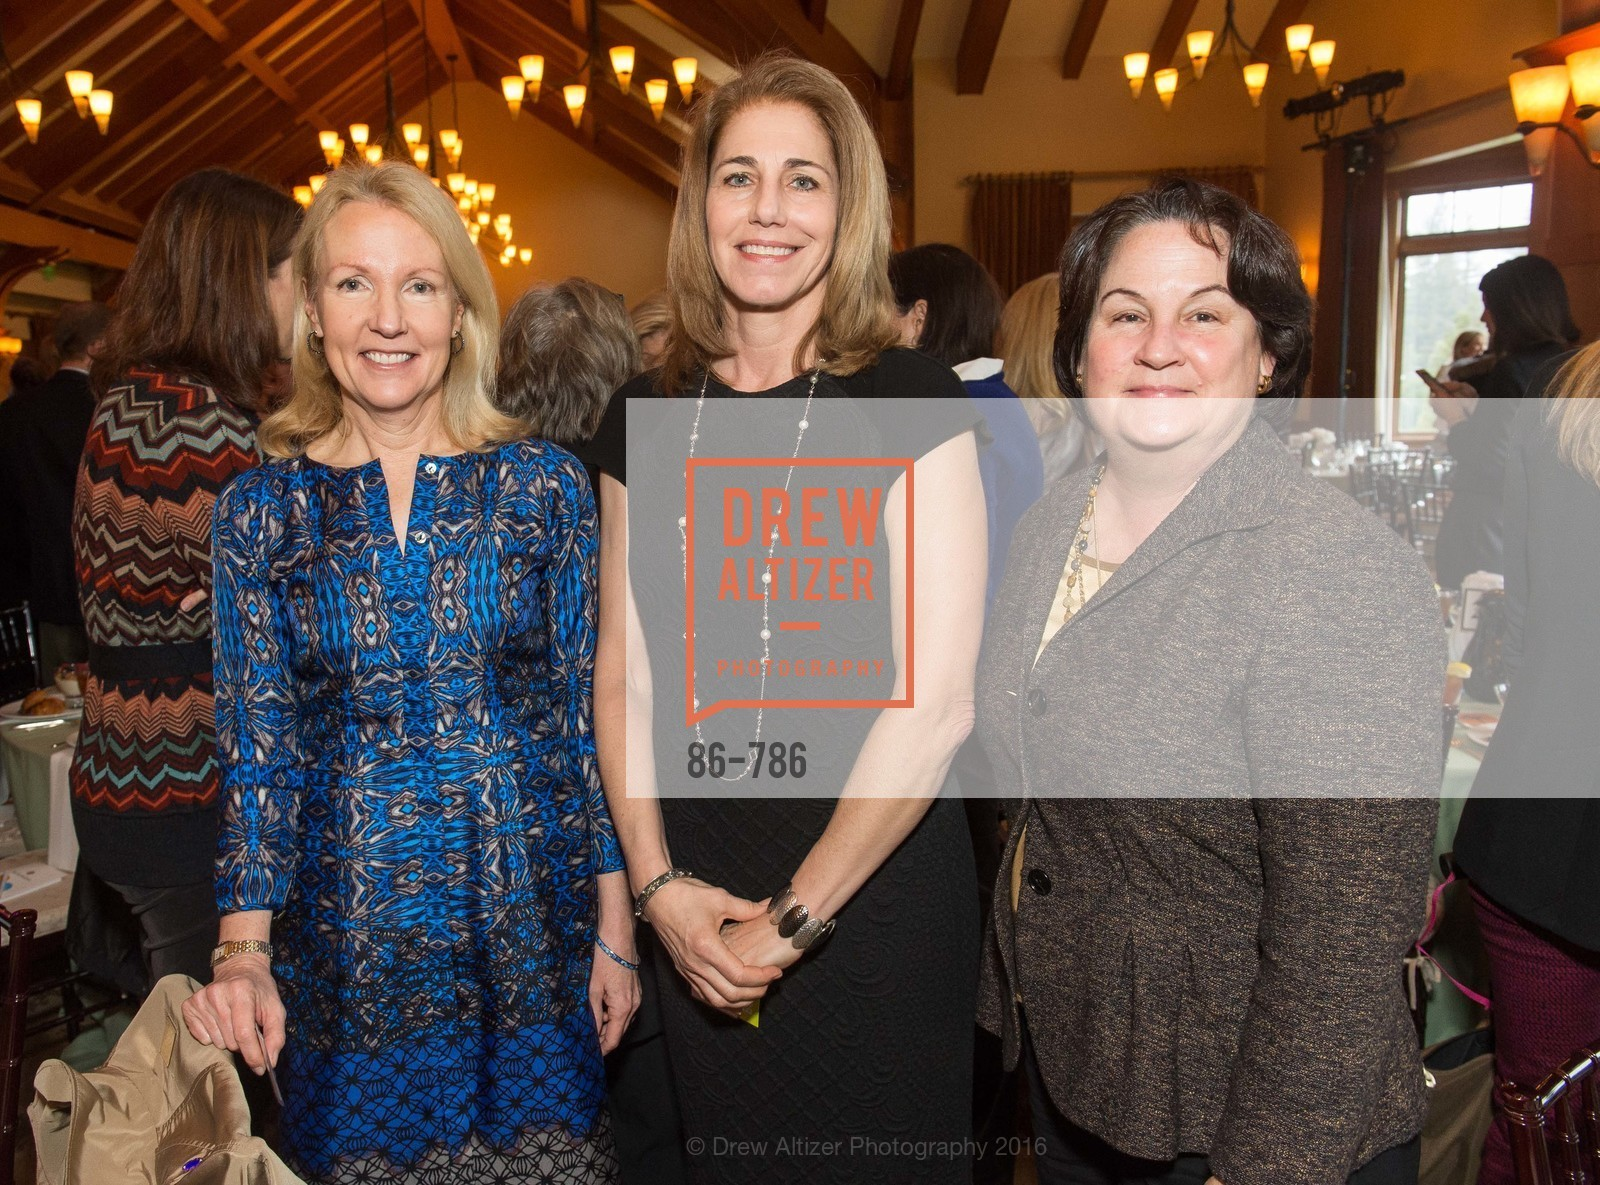 Ann Girard, Julie Terrell Hooper, Faye Strong, The Children's Health Council Breakfast, Sharon Height Golf and Country Club. 900 Sand Hill Rd, February 2nd, 2016,Drew Altizer, Drew Altizer Photography, full-service agency, private events, San Francisco photographer, photographer california